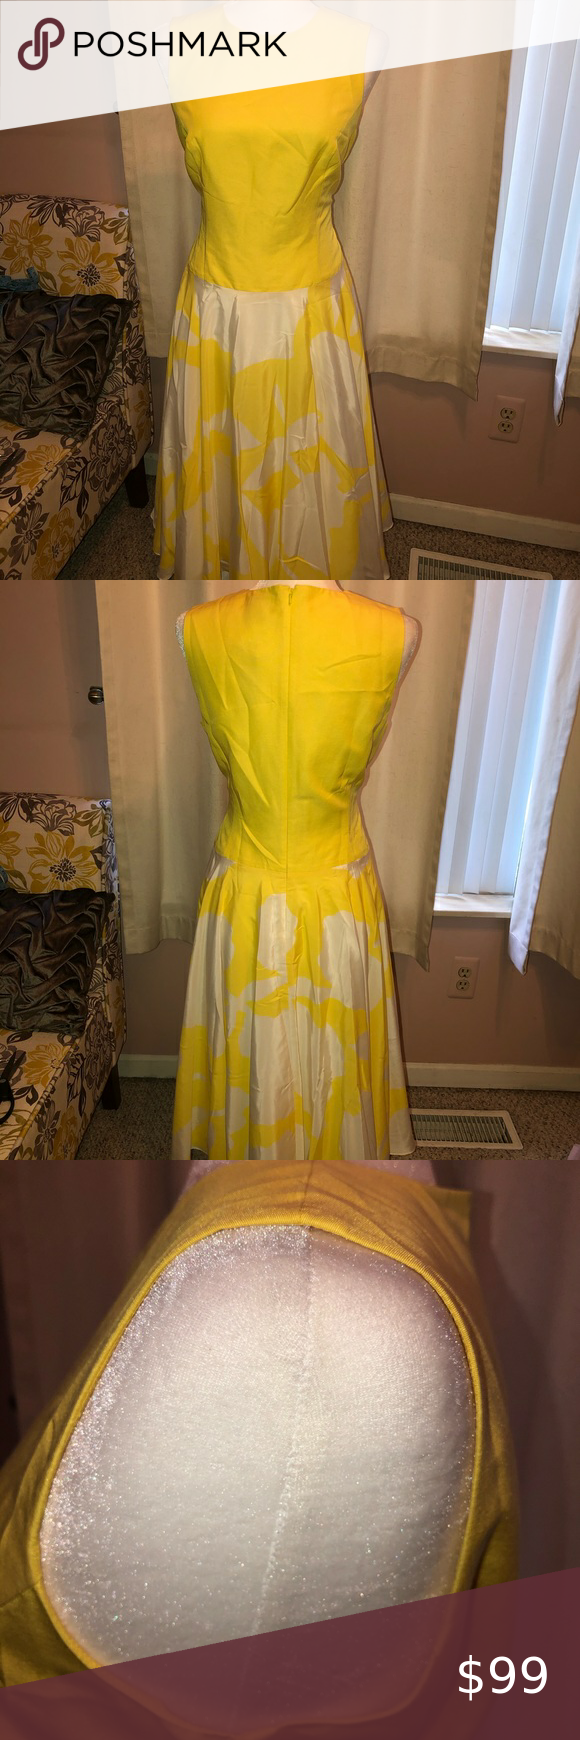 New W Tags J Peterman Yellow And White Dress Yellow And White Dress Dresses White Dress [ 1740 x 580 Pixel ]